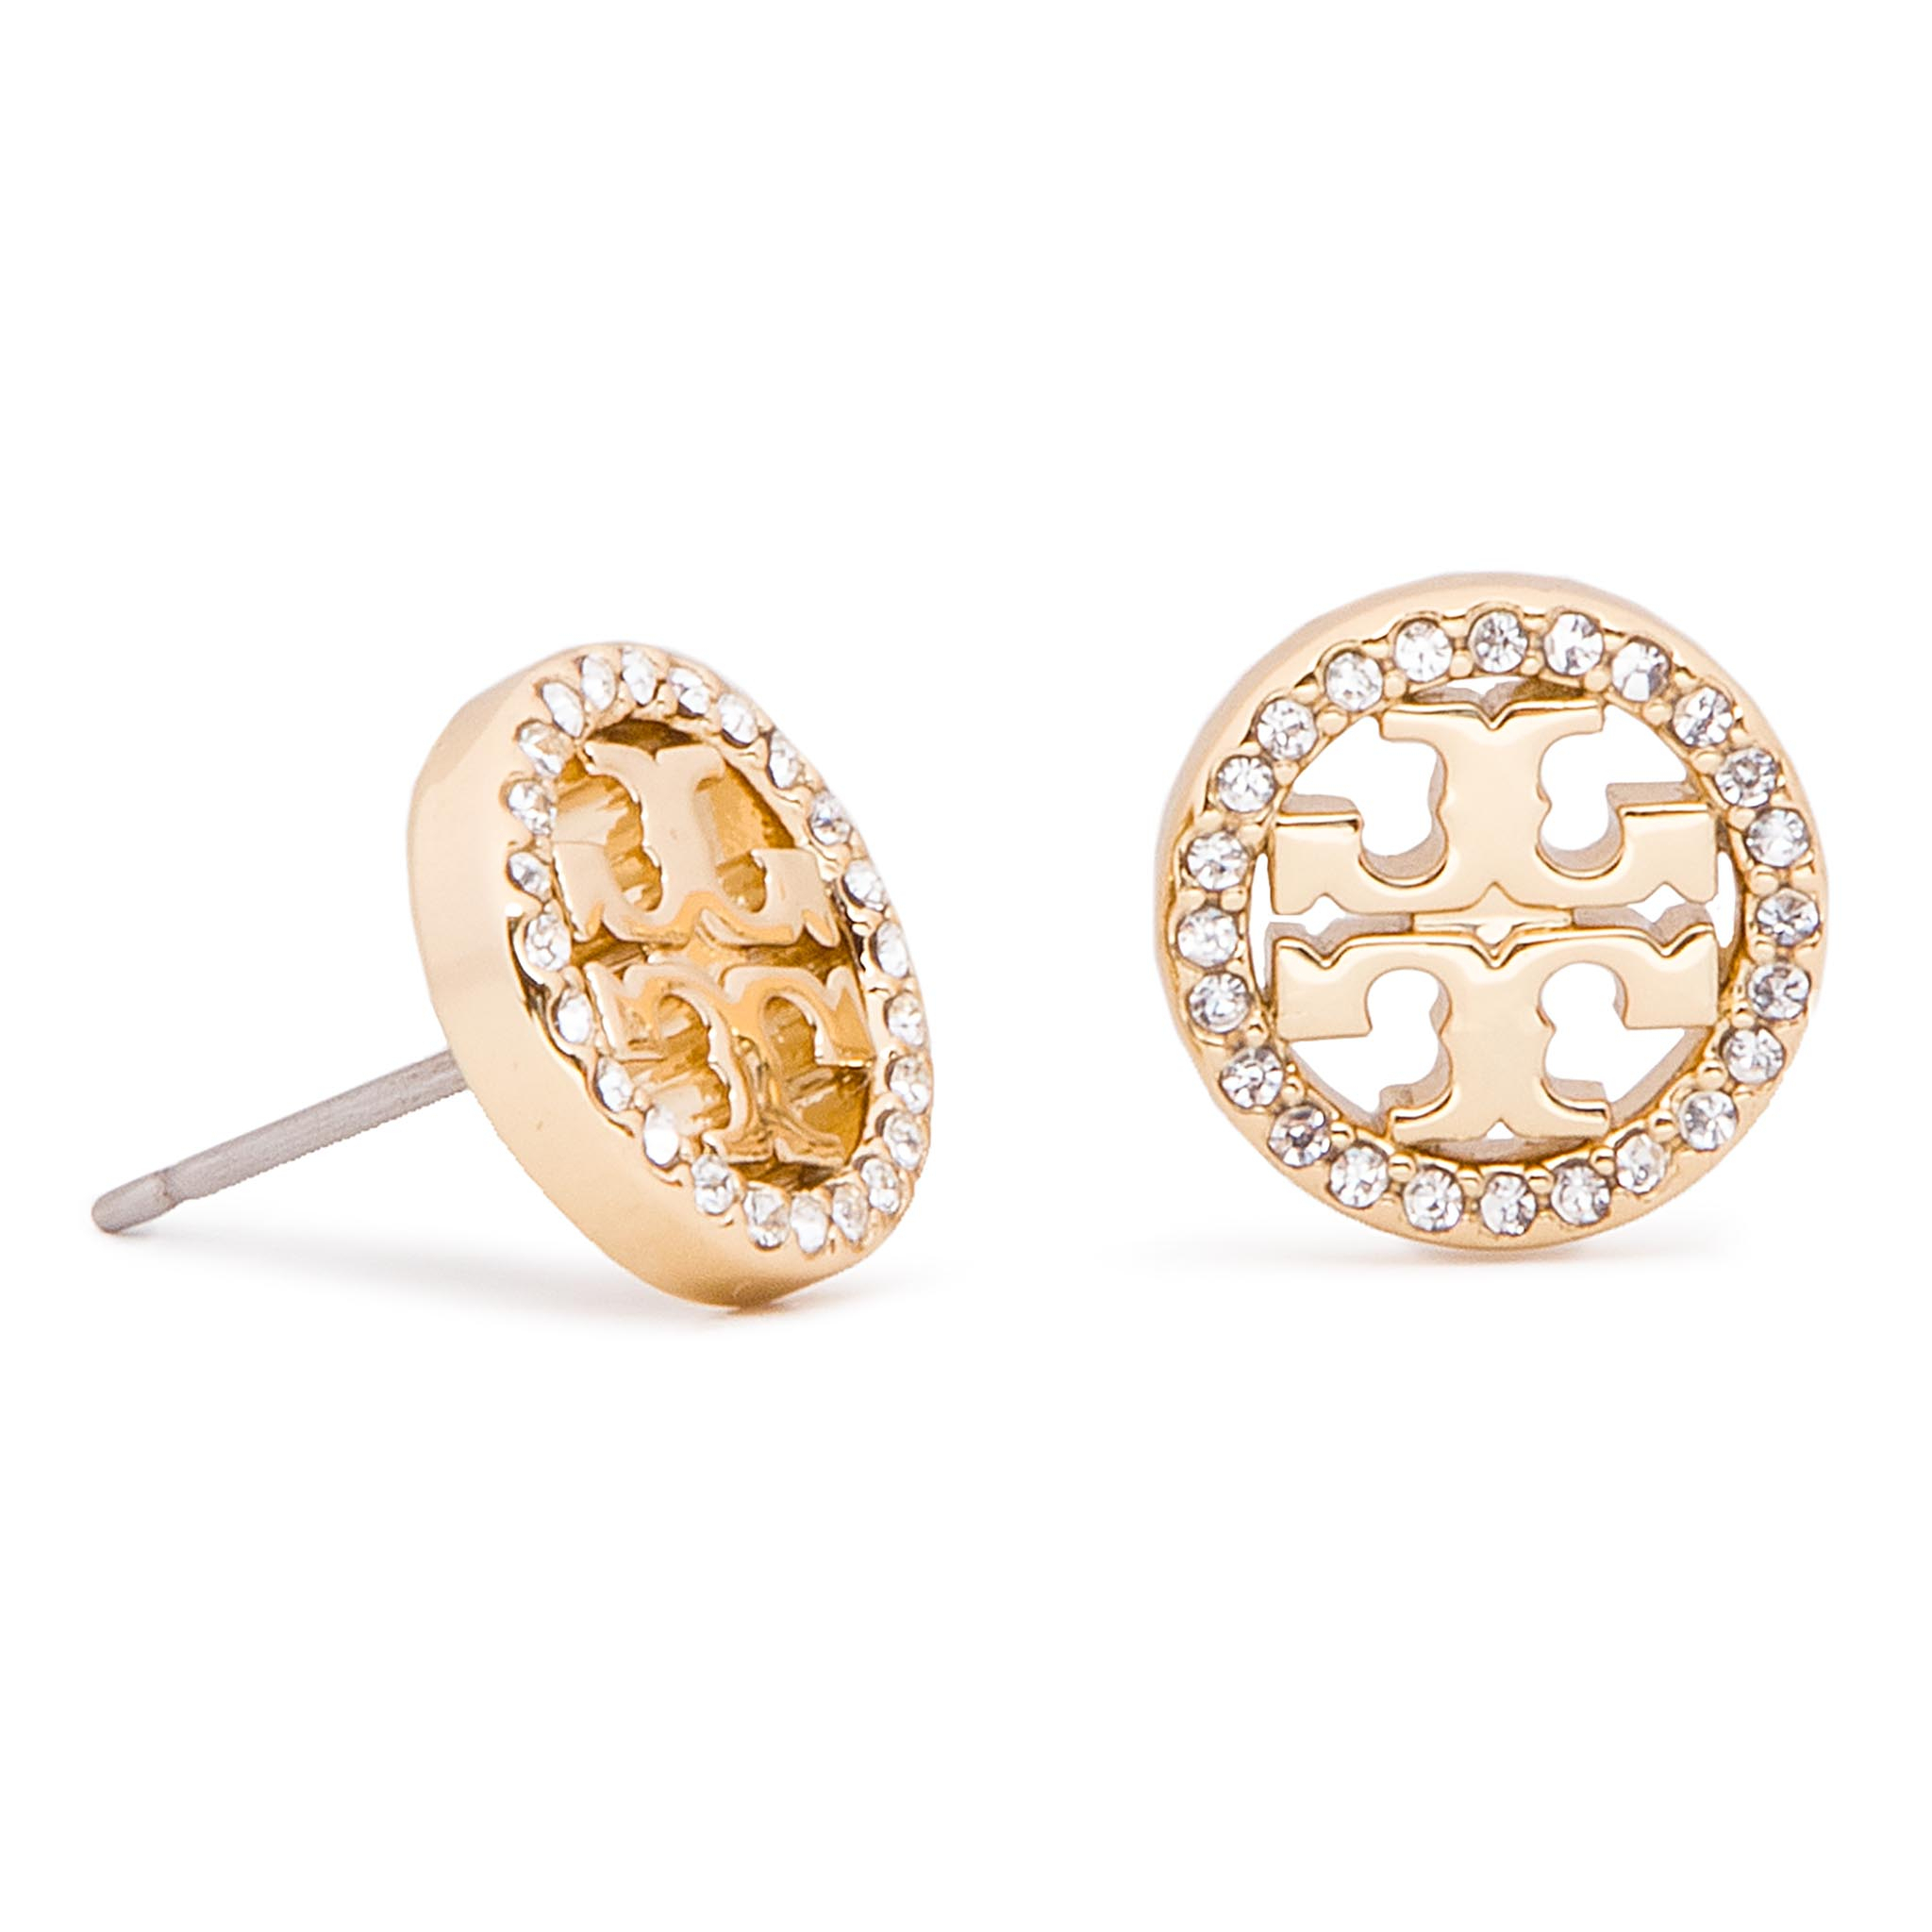 Boucles d'oreilles TORY BURCH - Crystal Logo Circle Stud Earring 53422 Tory Gold/Crystal 783